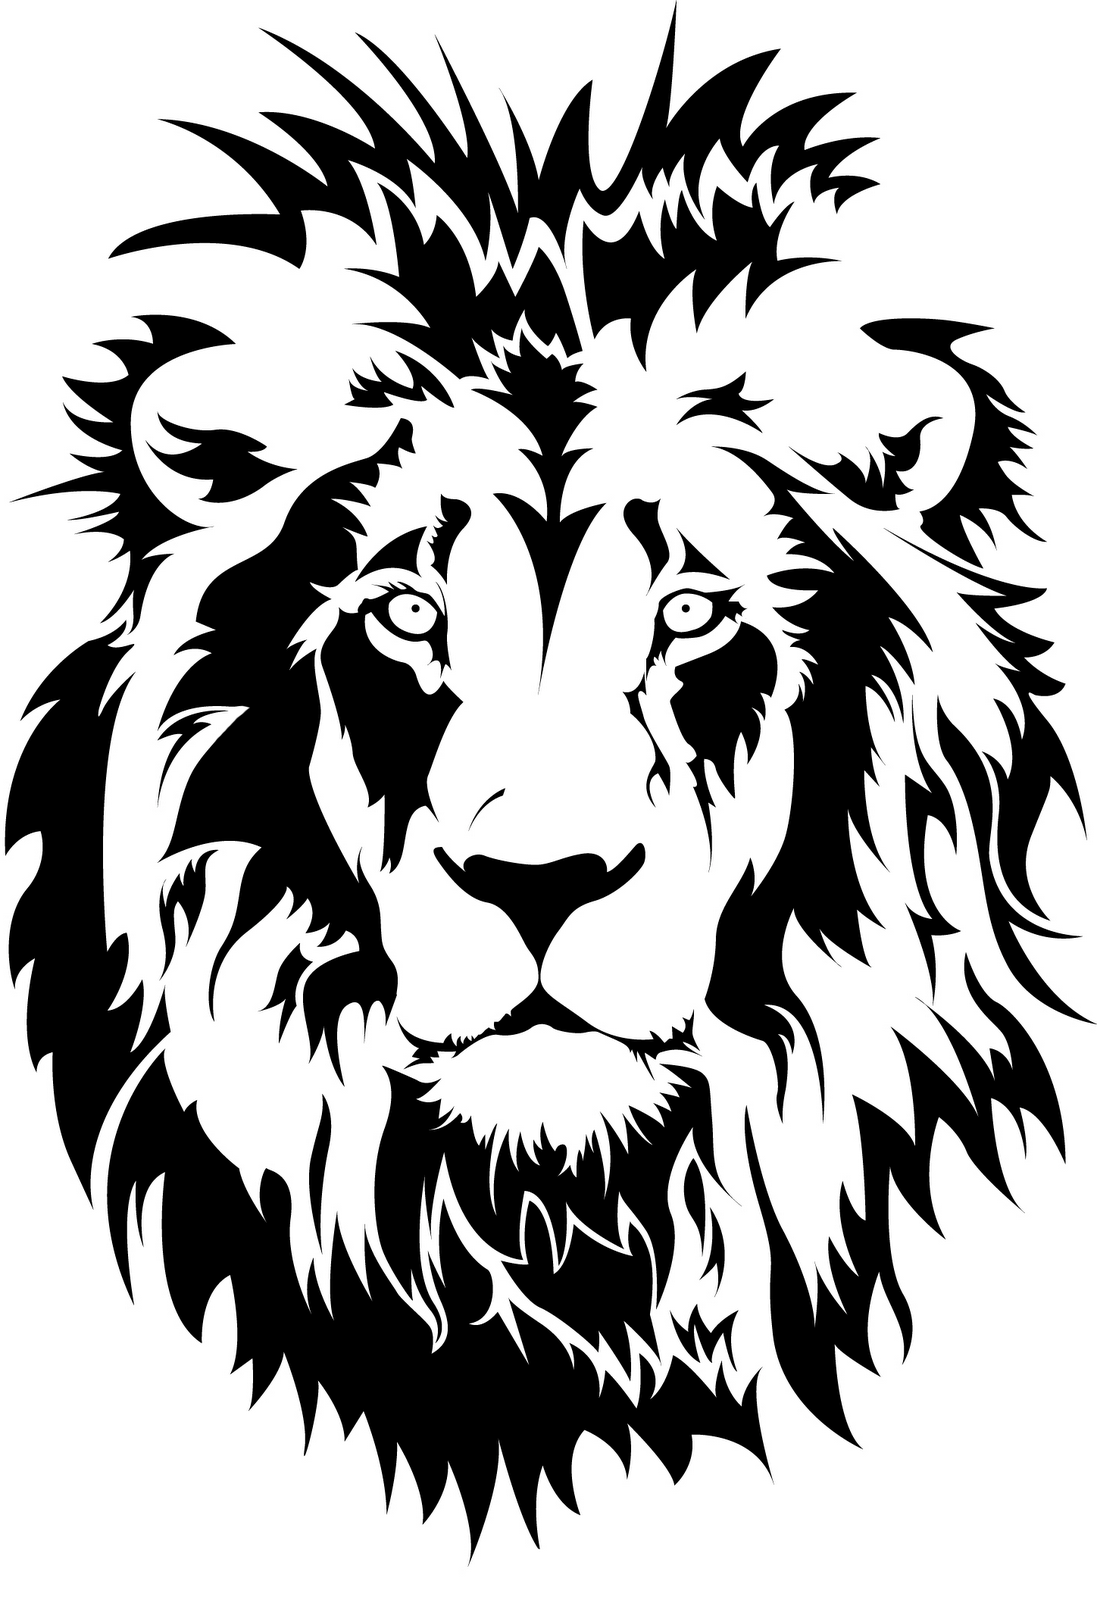 Tiger Scratch Drawing at GetDrawings com | Free for personal